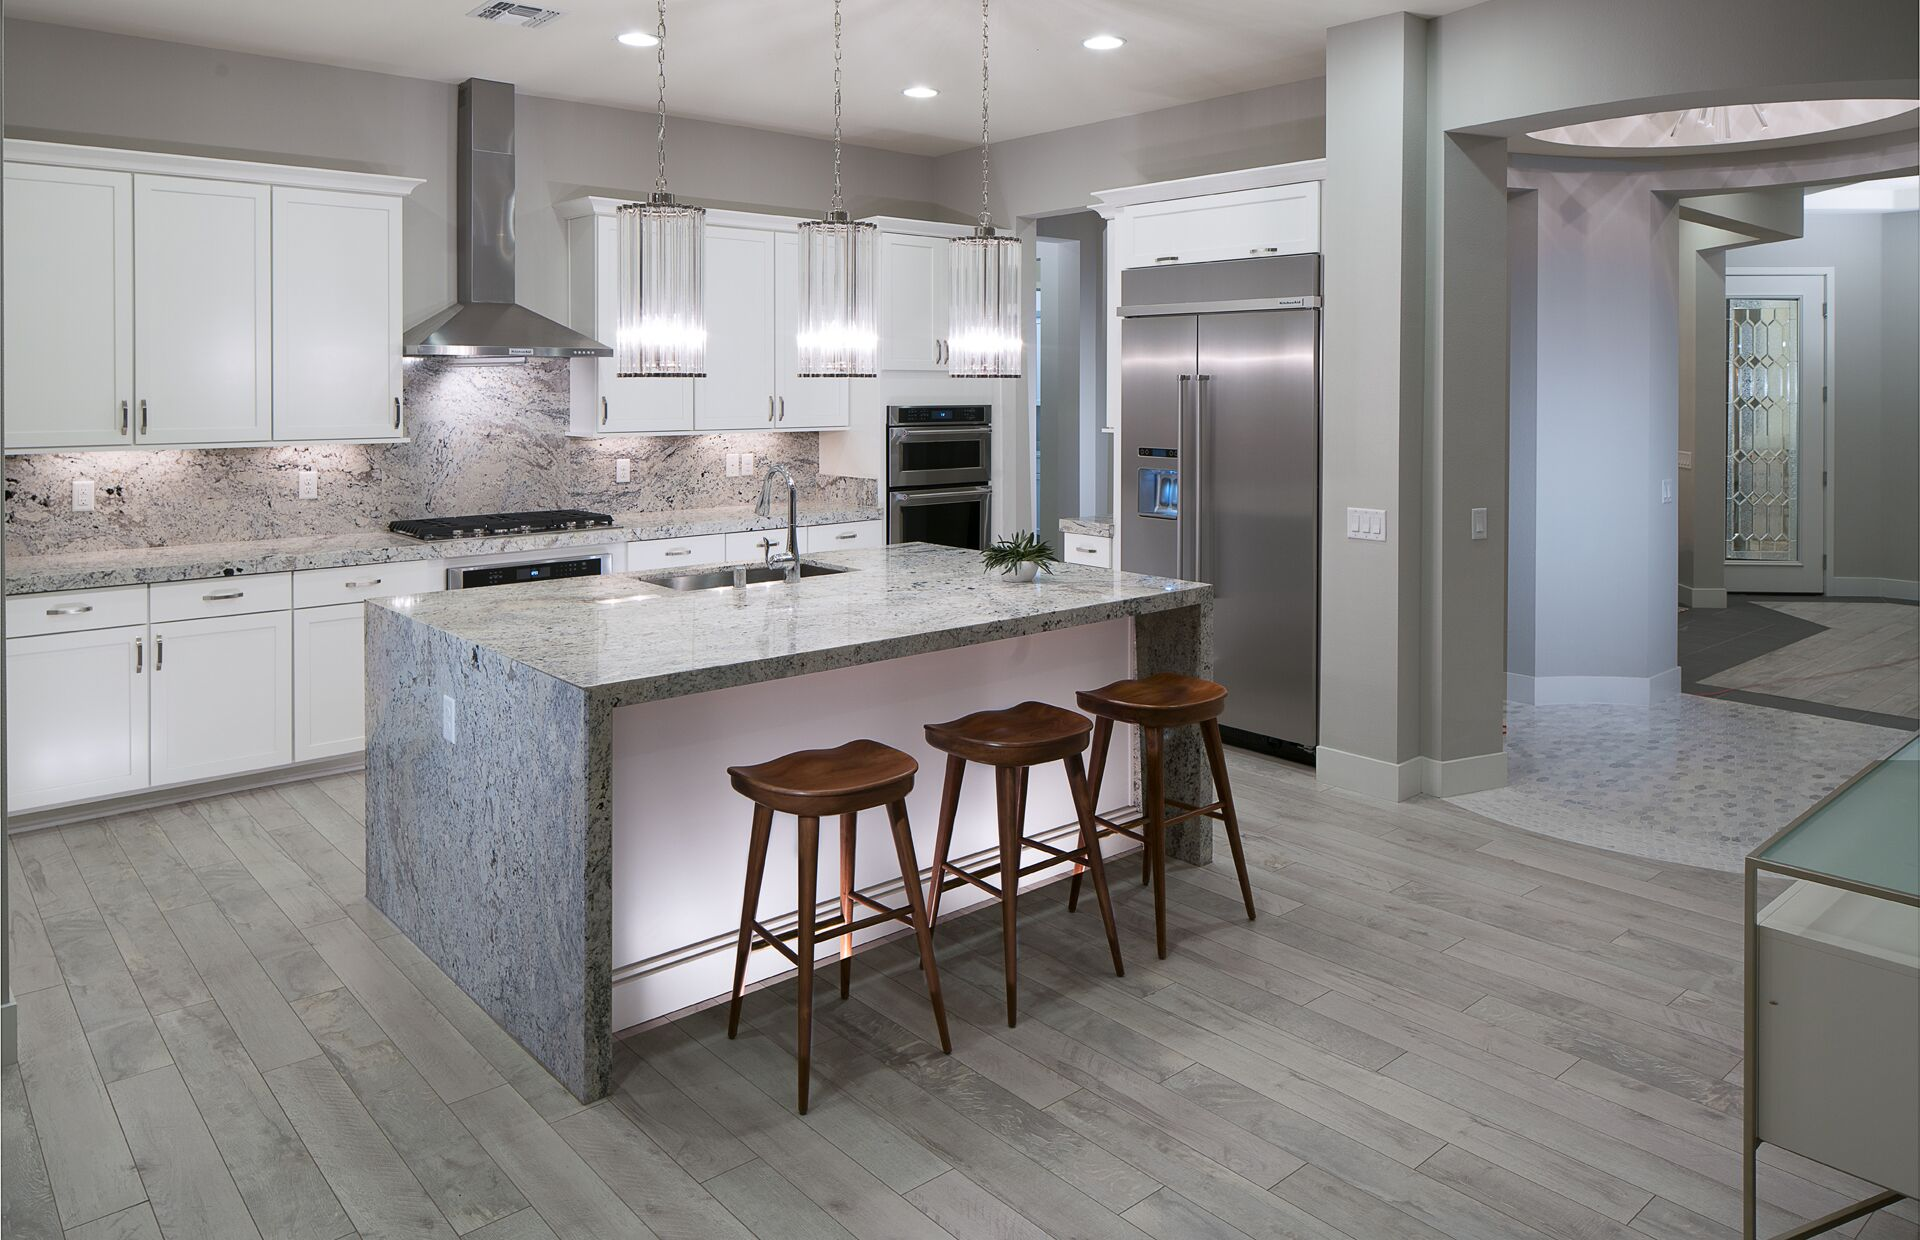 5 Kitchen Design Trends to Take From Model Homes - Lawson ... on Model Kitchen Picture  id=93001